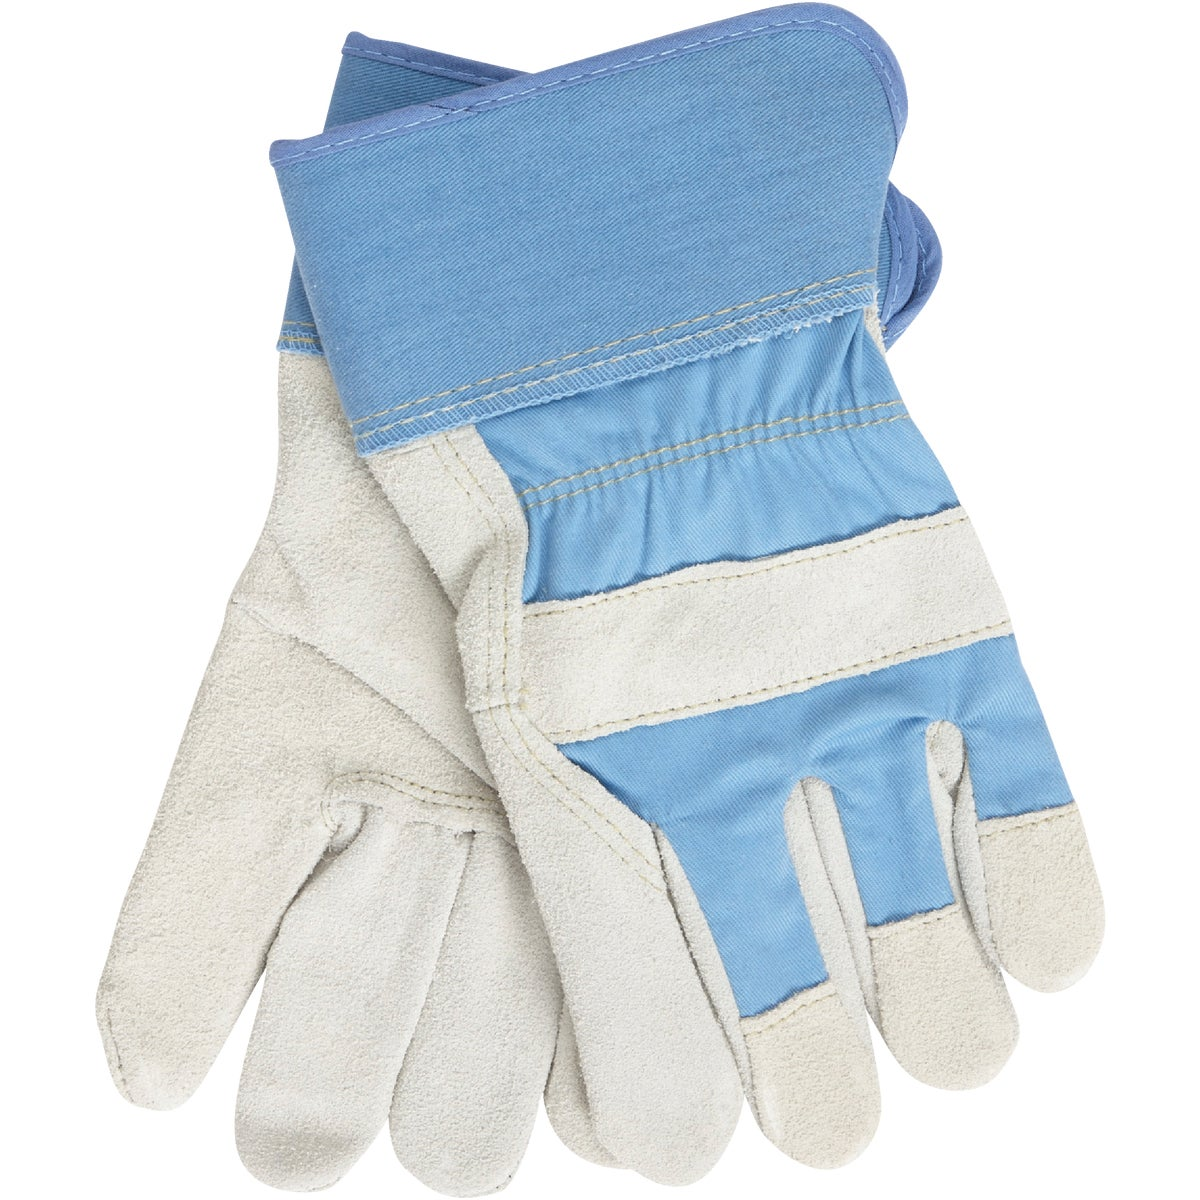 MED LADIES LEATHER GLOVE - 715-8 by Do it Best